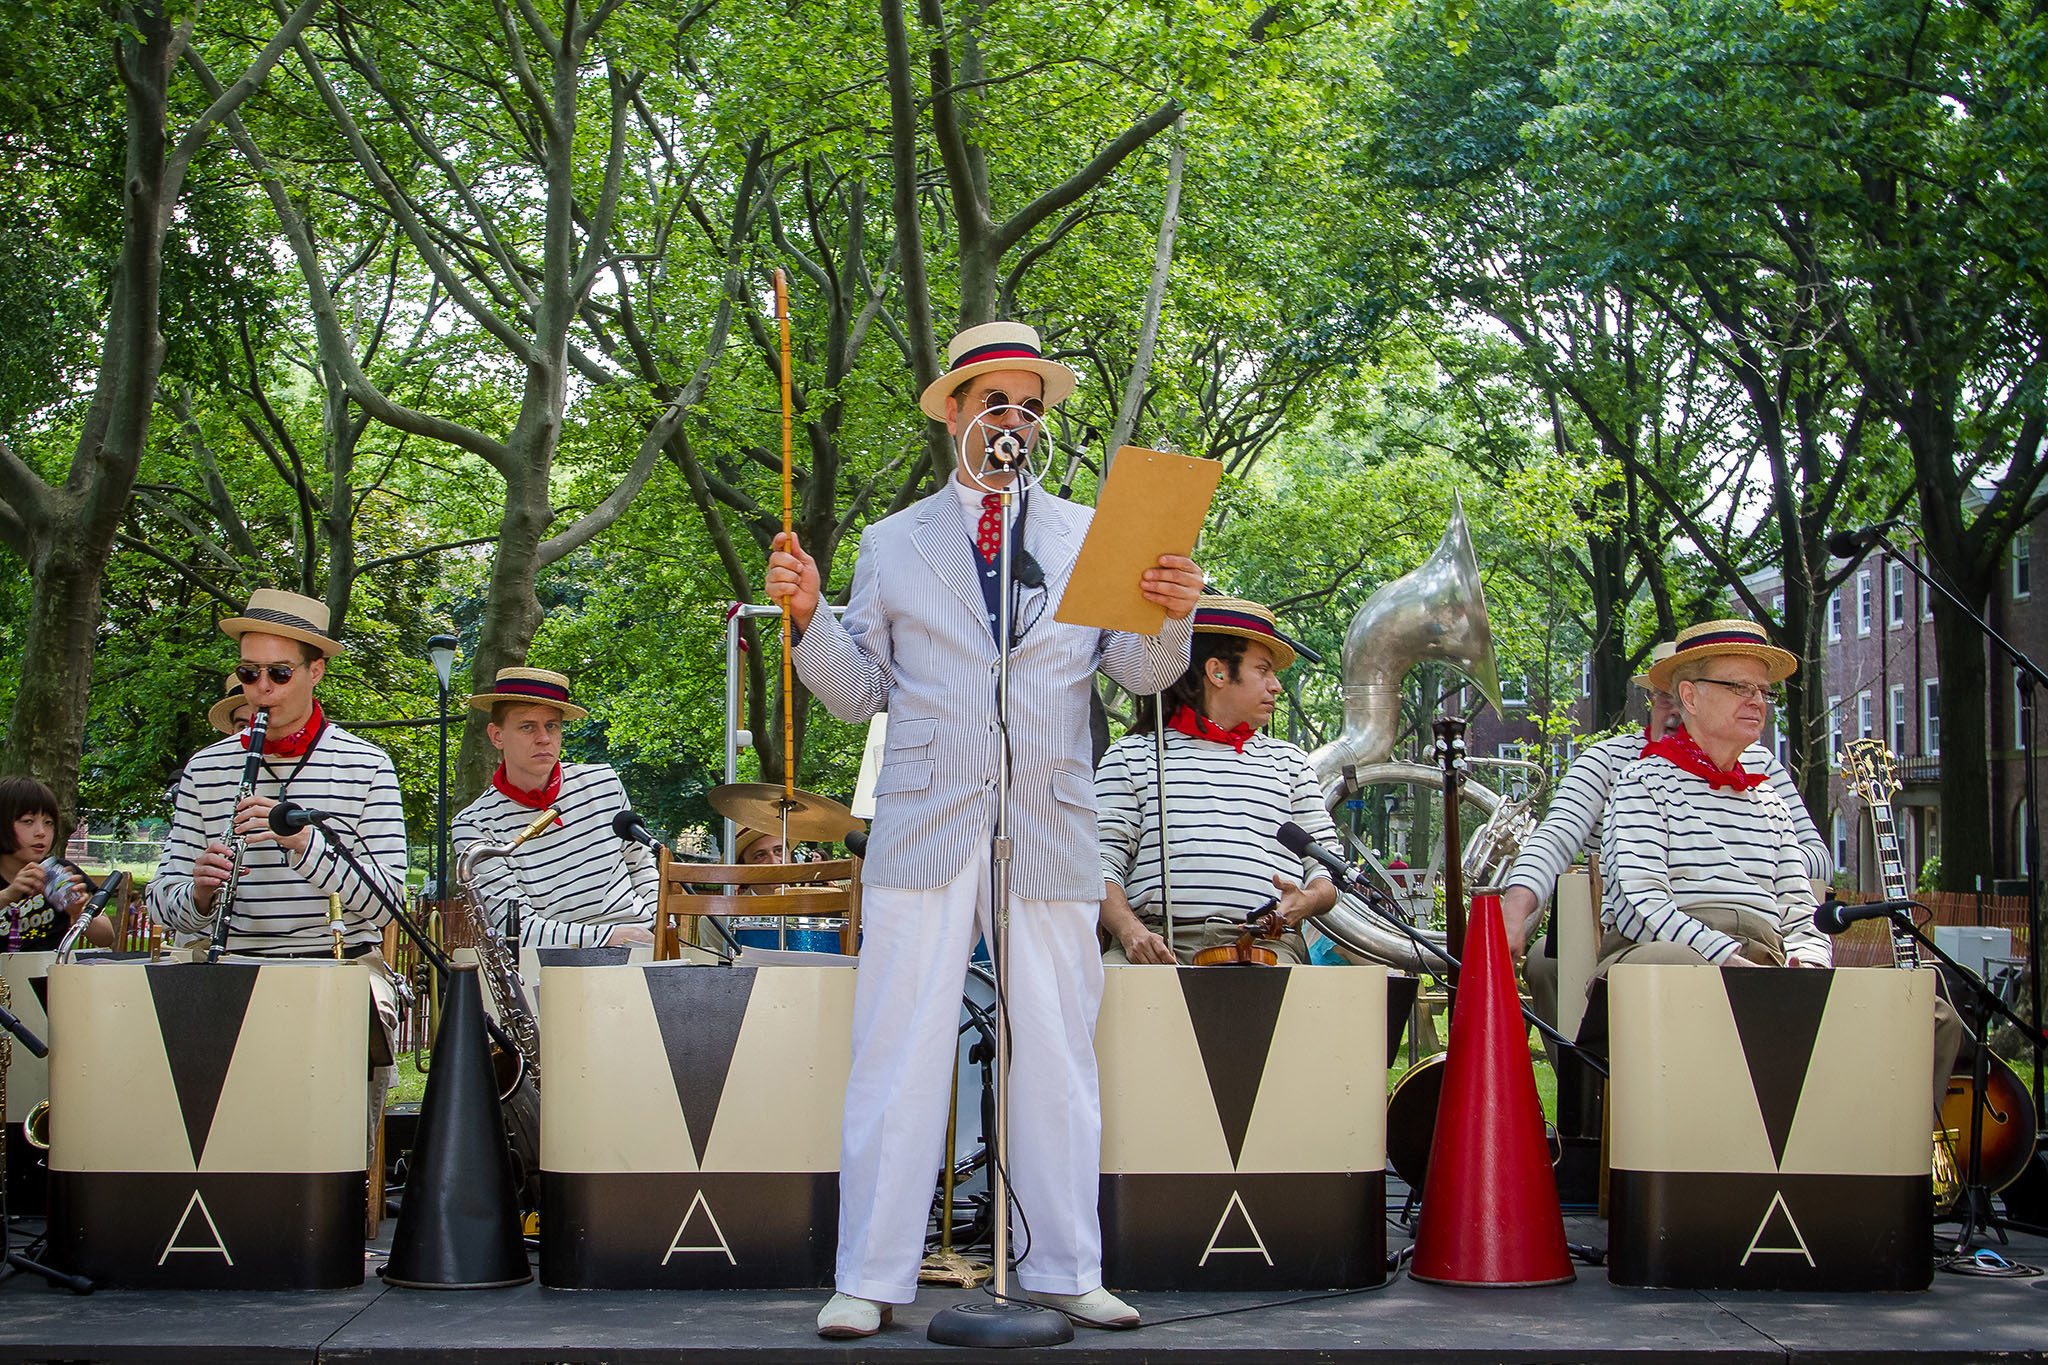 Jazz Age Lawn Party 2013 at Governors Island